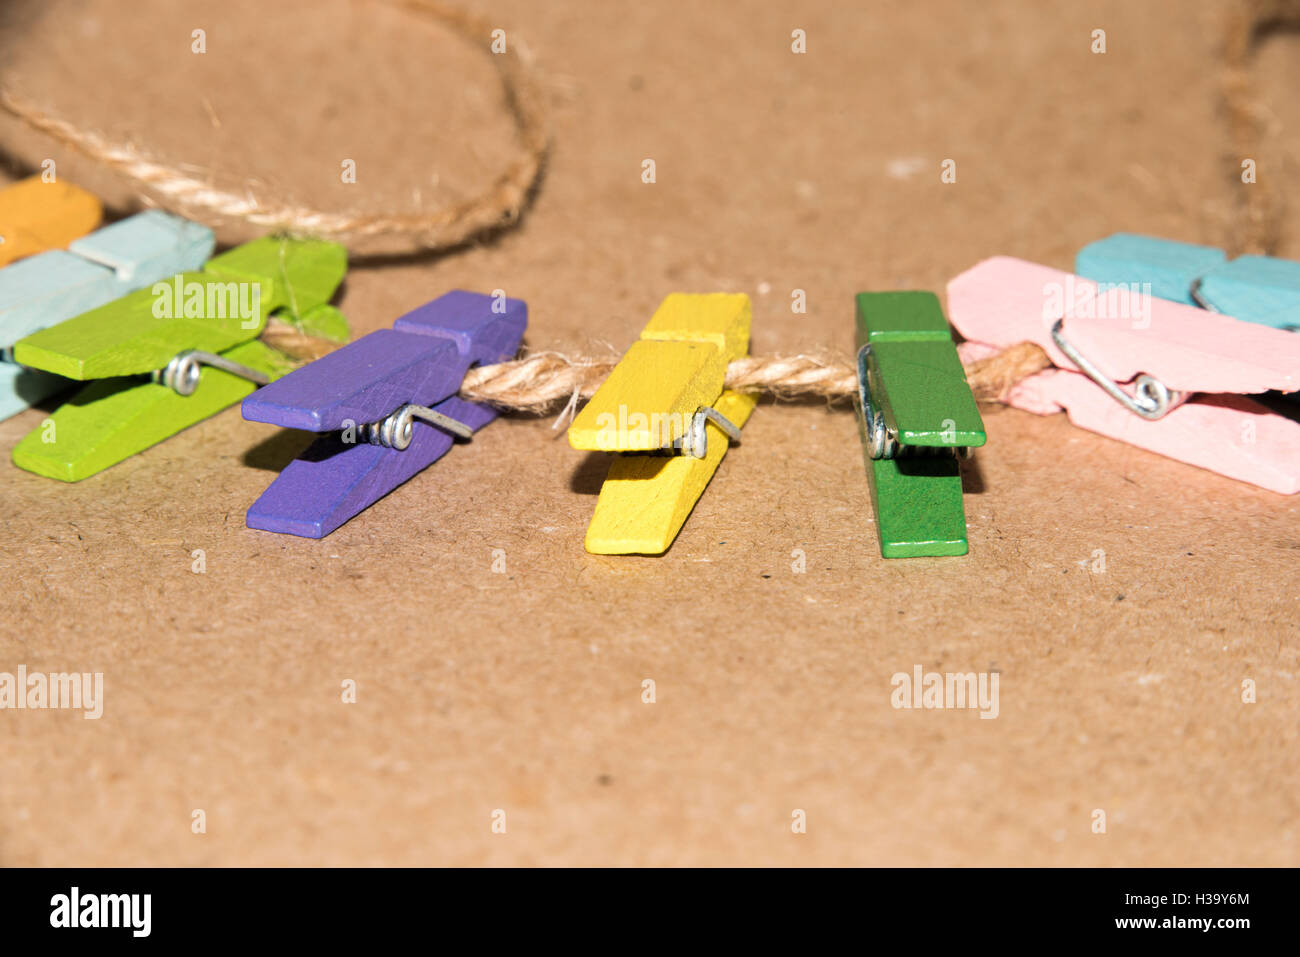 Colorful wooden clothespin. Background of colorful clothes pegs. Closeup of colorful clothespins. Stock Photo